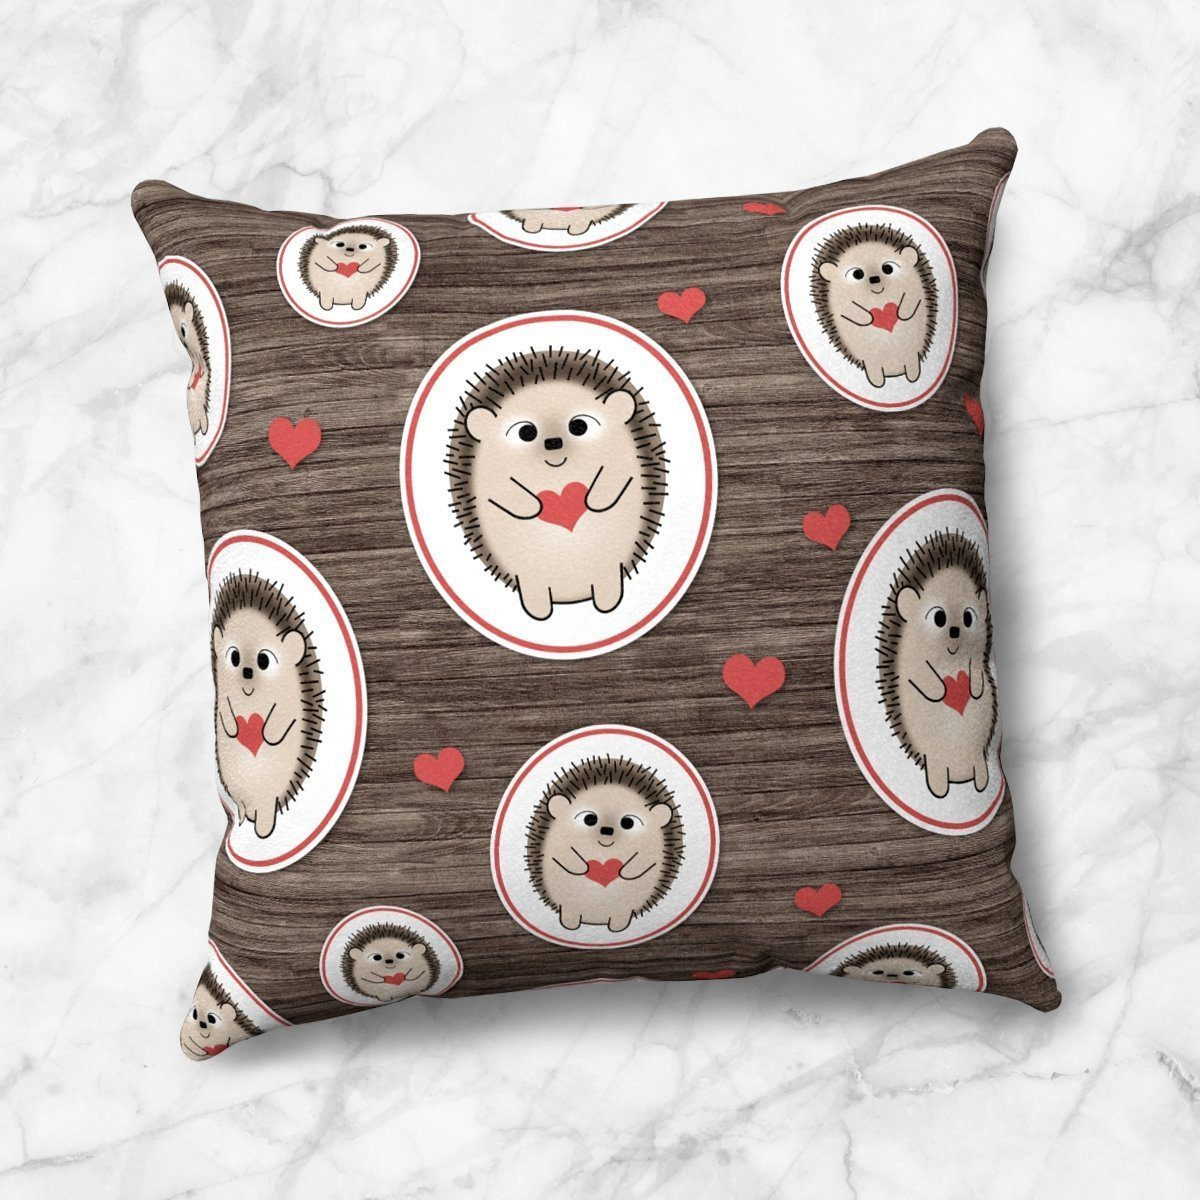 Rustic Red Heart Hedgehog Pattern Throw Pillow at Speckle Rock